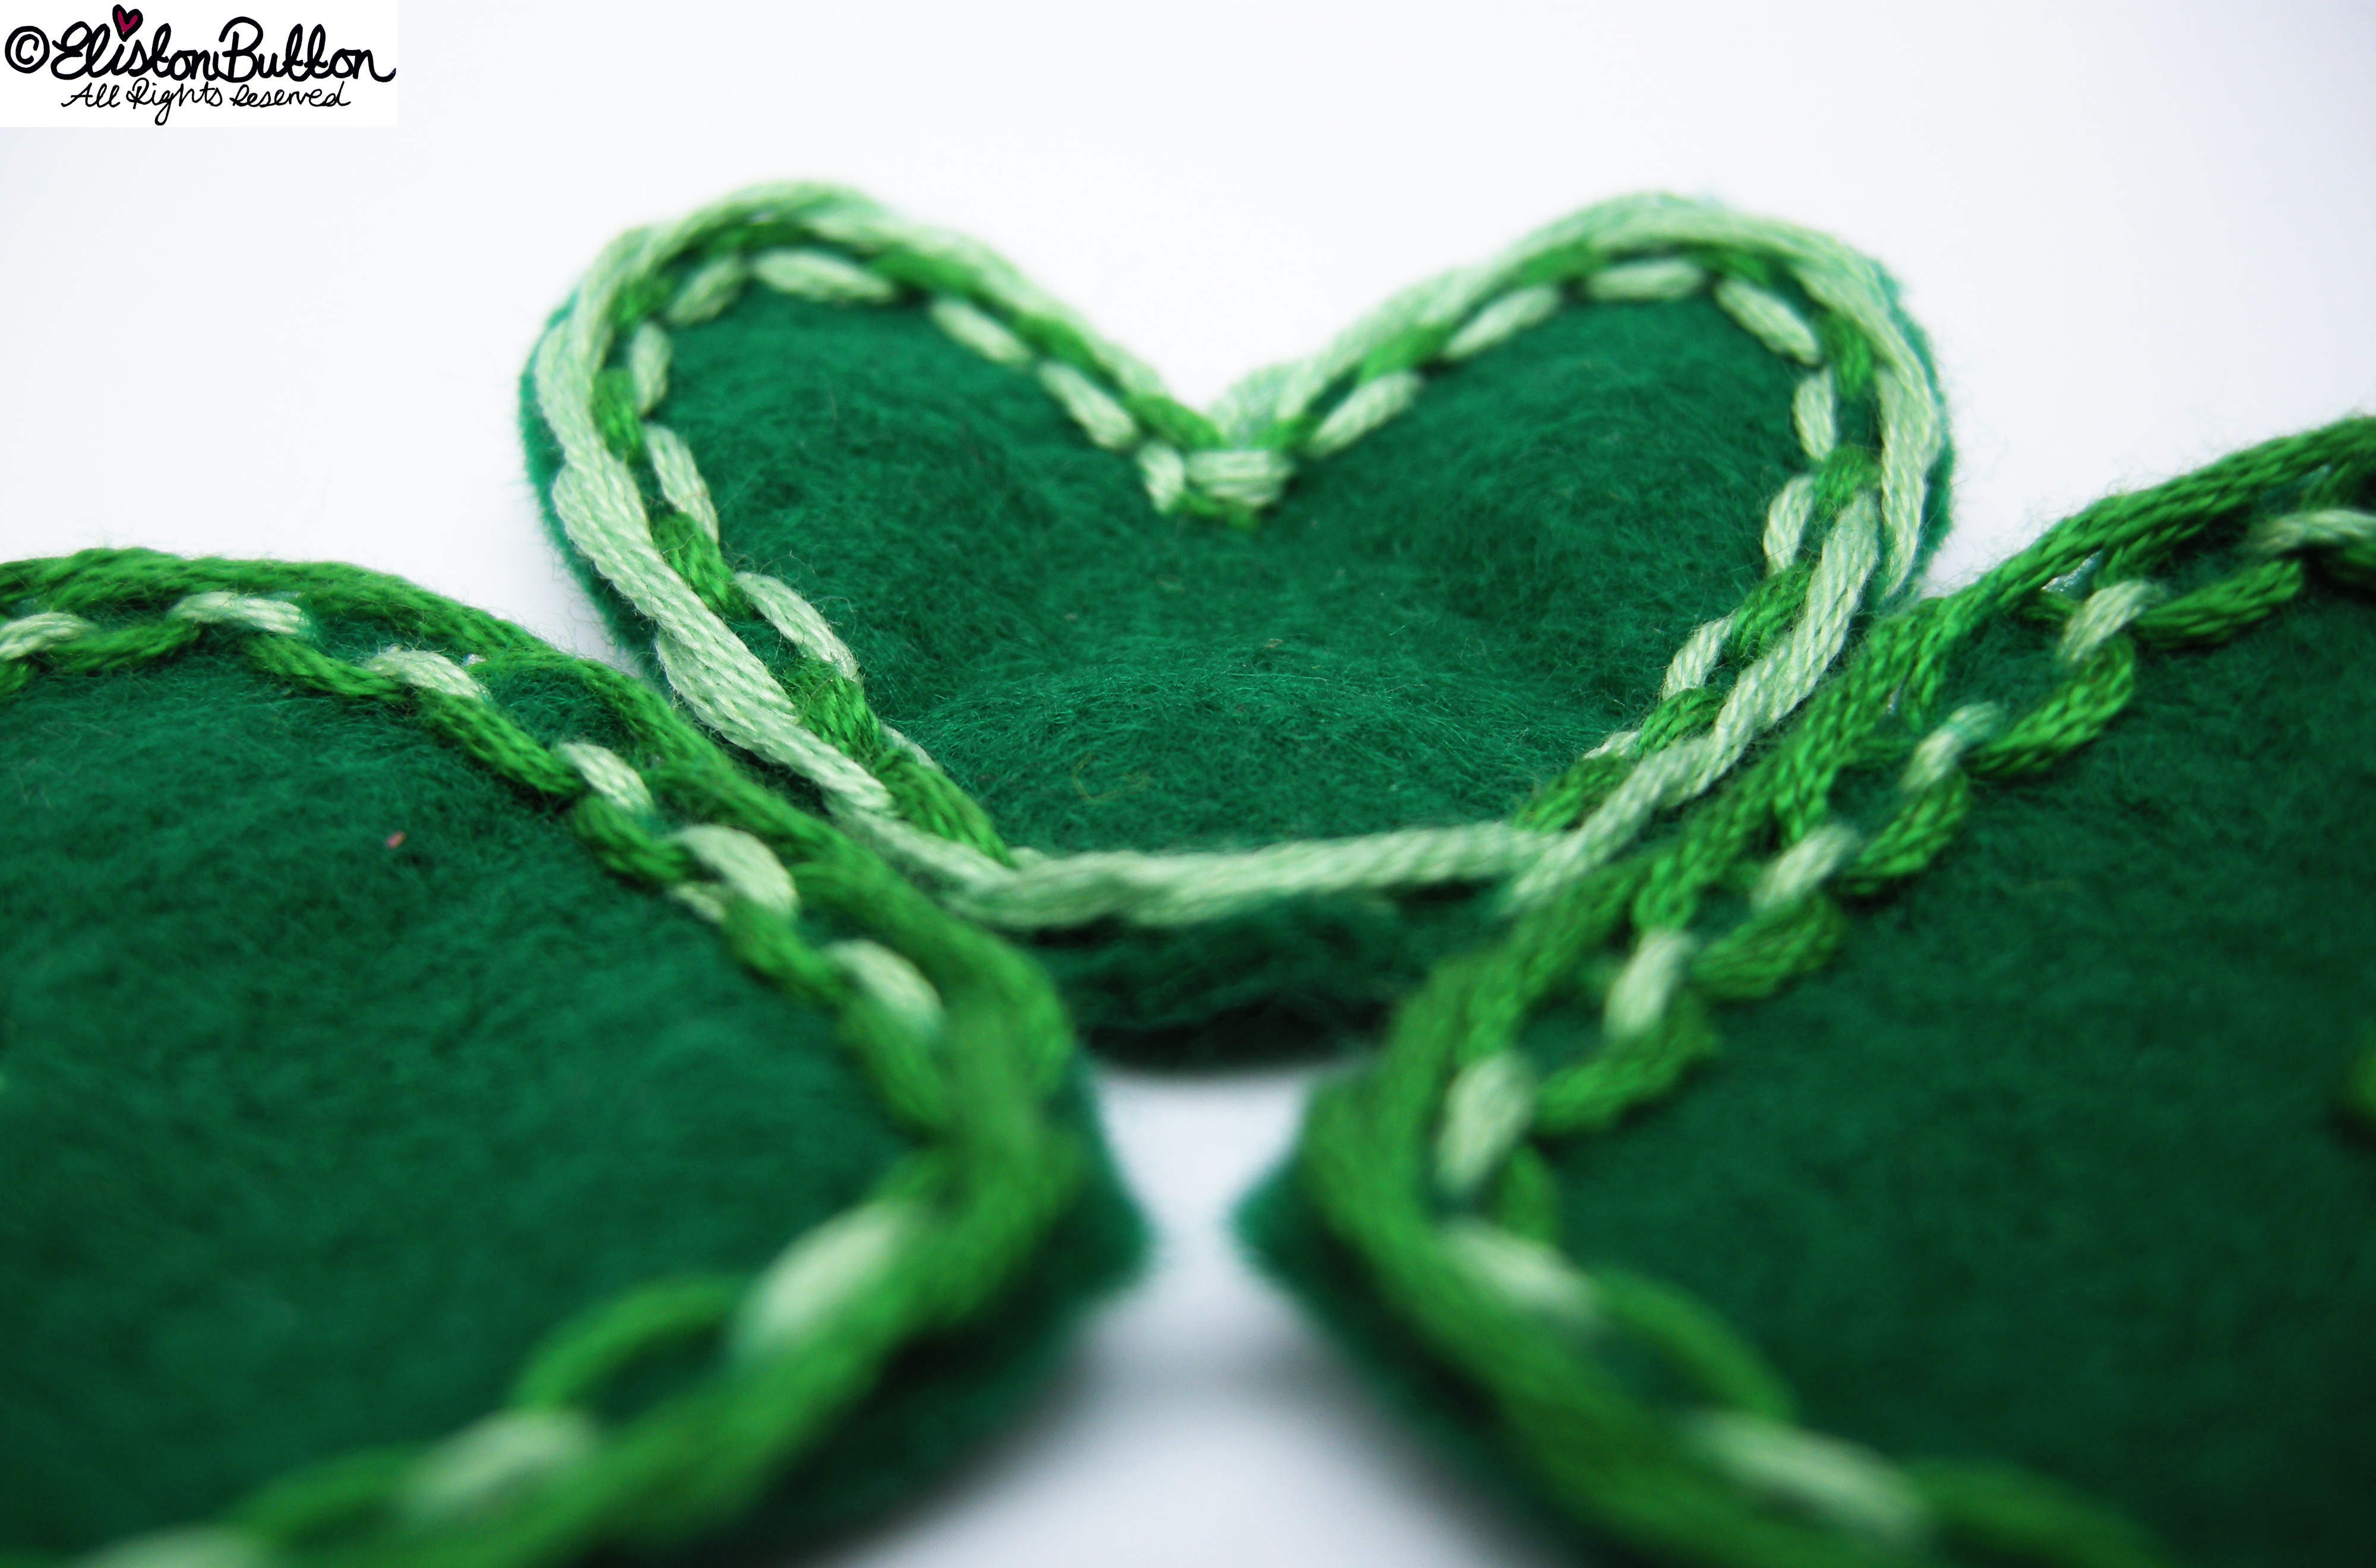 Hand Stitched Green Heart Shapes - Lace-Like Stitch Close Up - 27 Before 27 – Lucky at www.elistonbutton.com - Eliston Button - That Crafty Kid – Art, Design, Craft & Adventure.